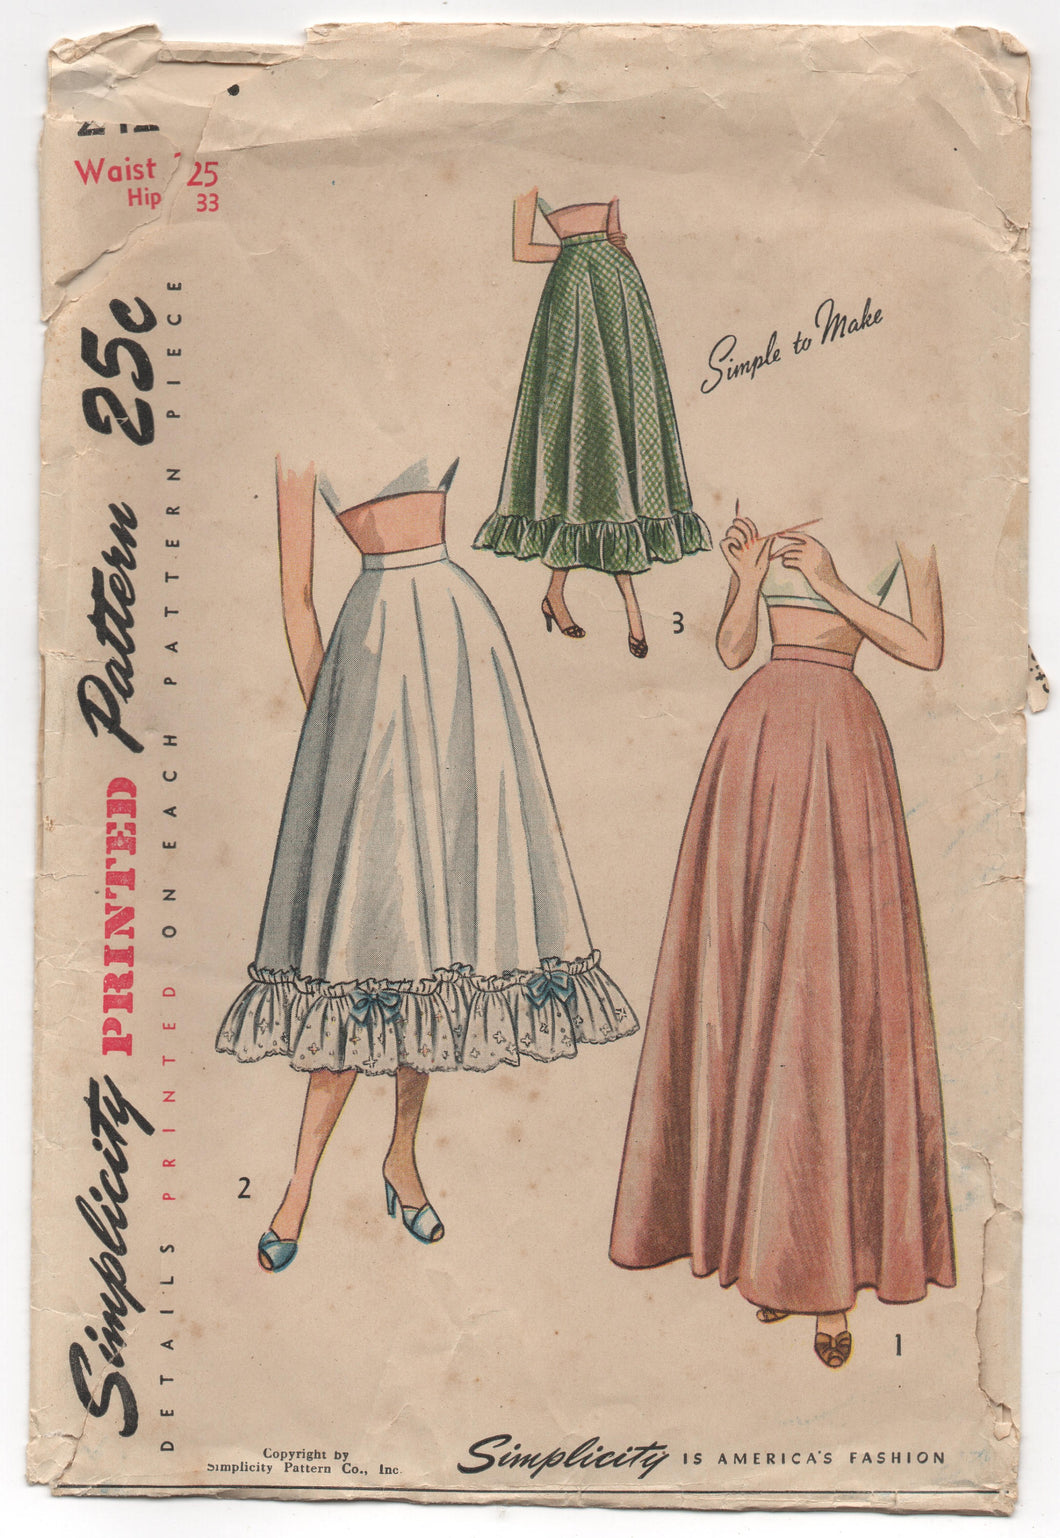 "1940's Simplicity Half Slip in Daytime or Evening style - Waist 25"" - No. 2421"